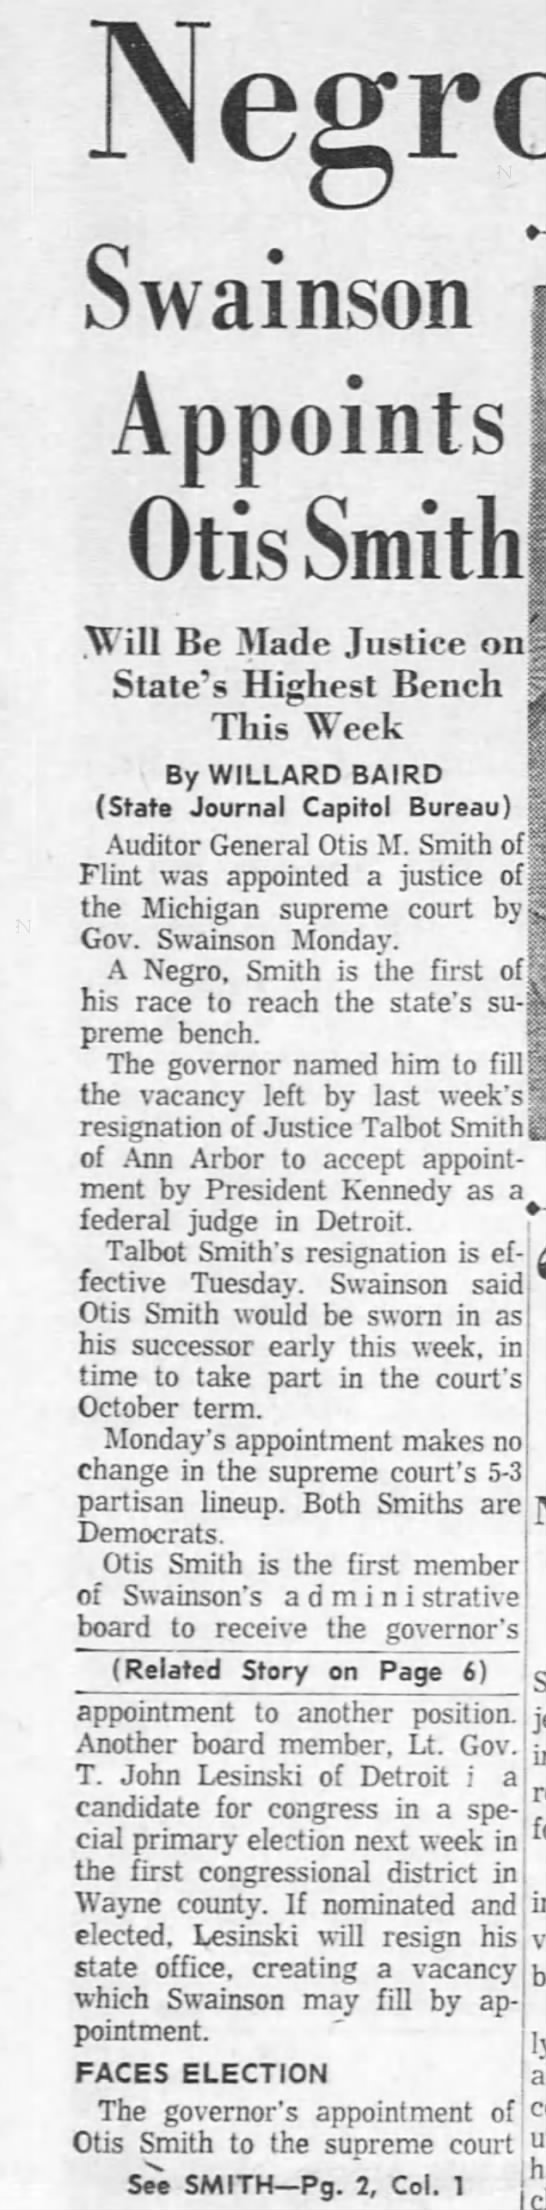 Negro Named to Supreme Court: Swainson Appoints Otis Smith -